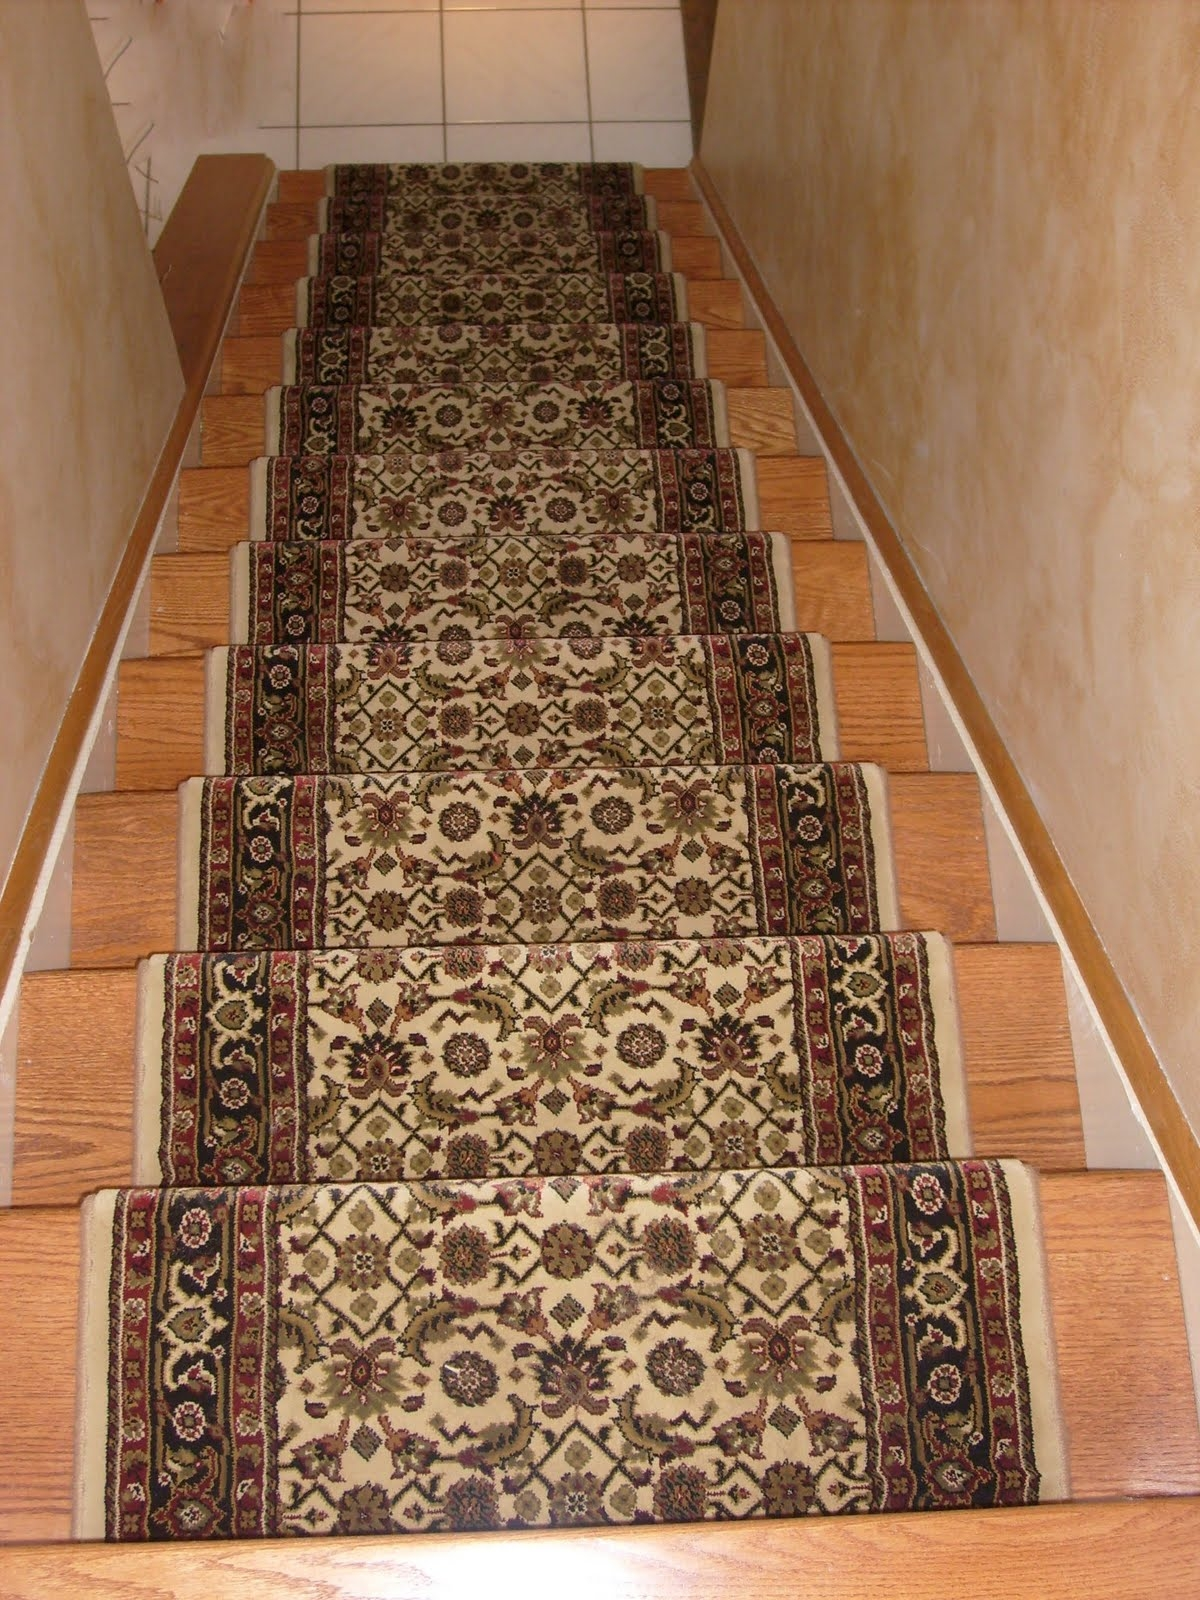 Designer Oriental Floral Carpet Runner For Stairs On Wooden Foot Throughout Stair Tread Carpet Runners (Image 9 of 15)